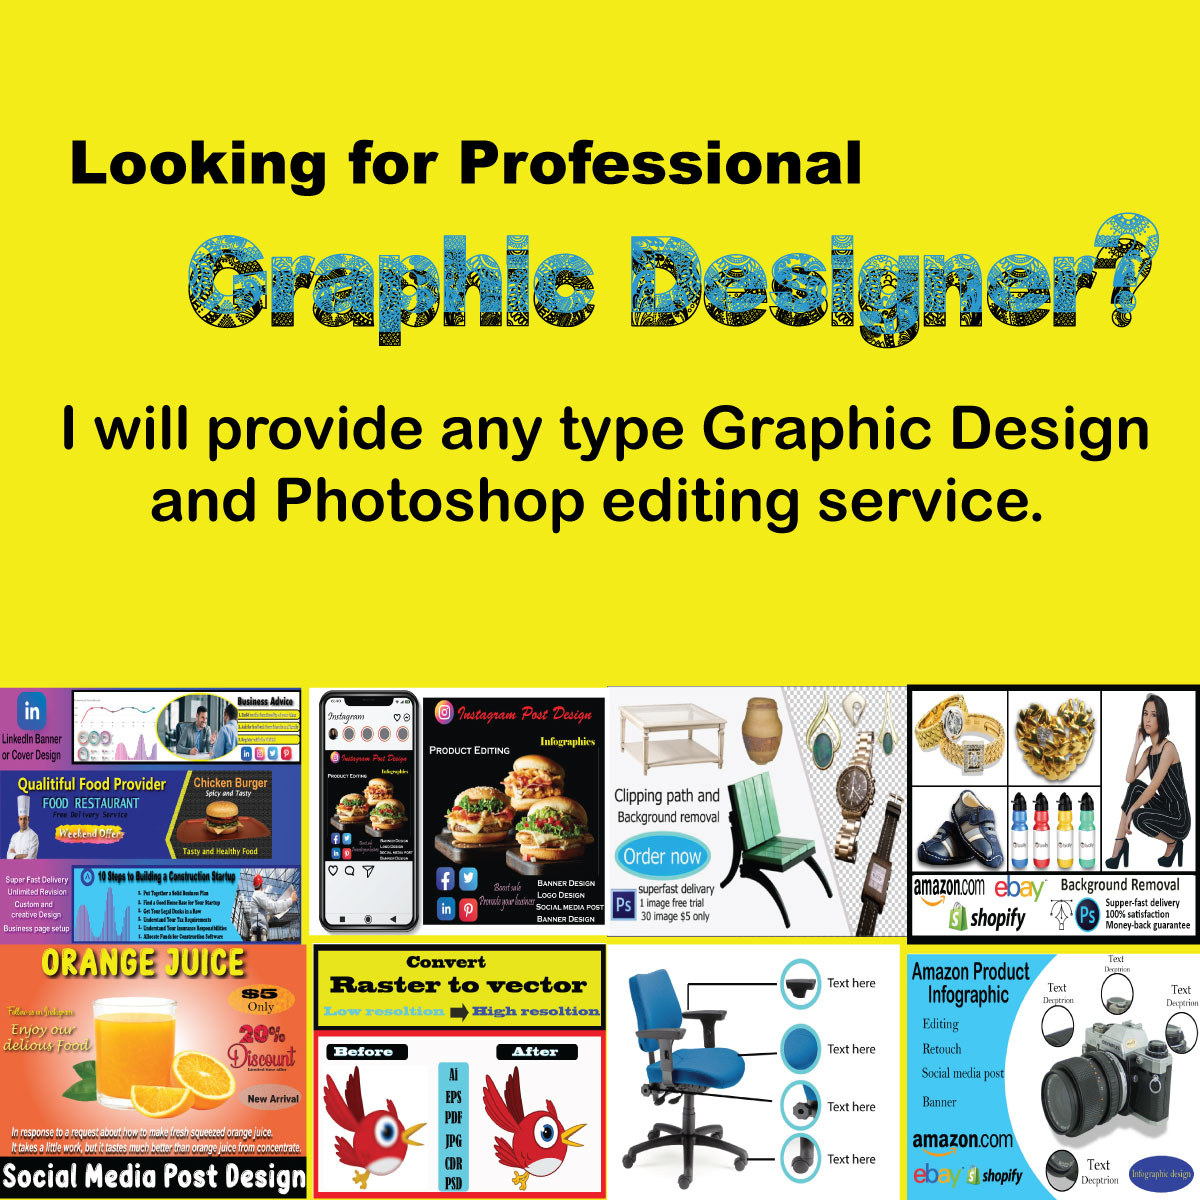 I will provide any type Graphic design or editing service